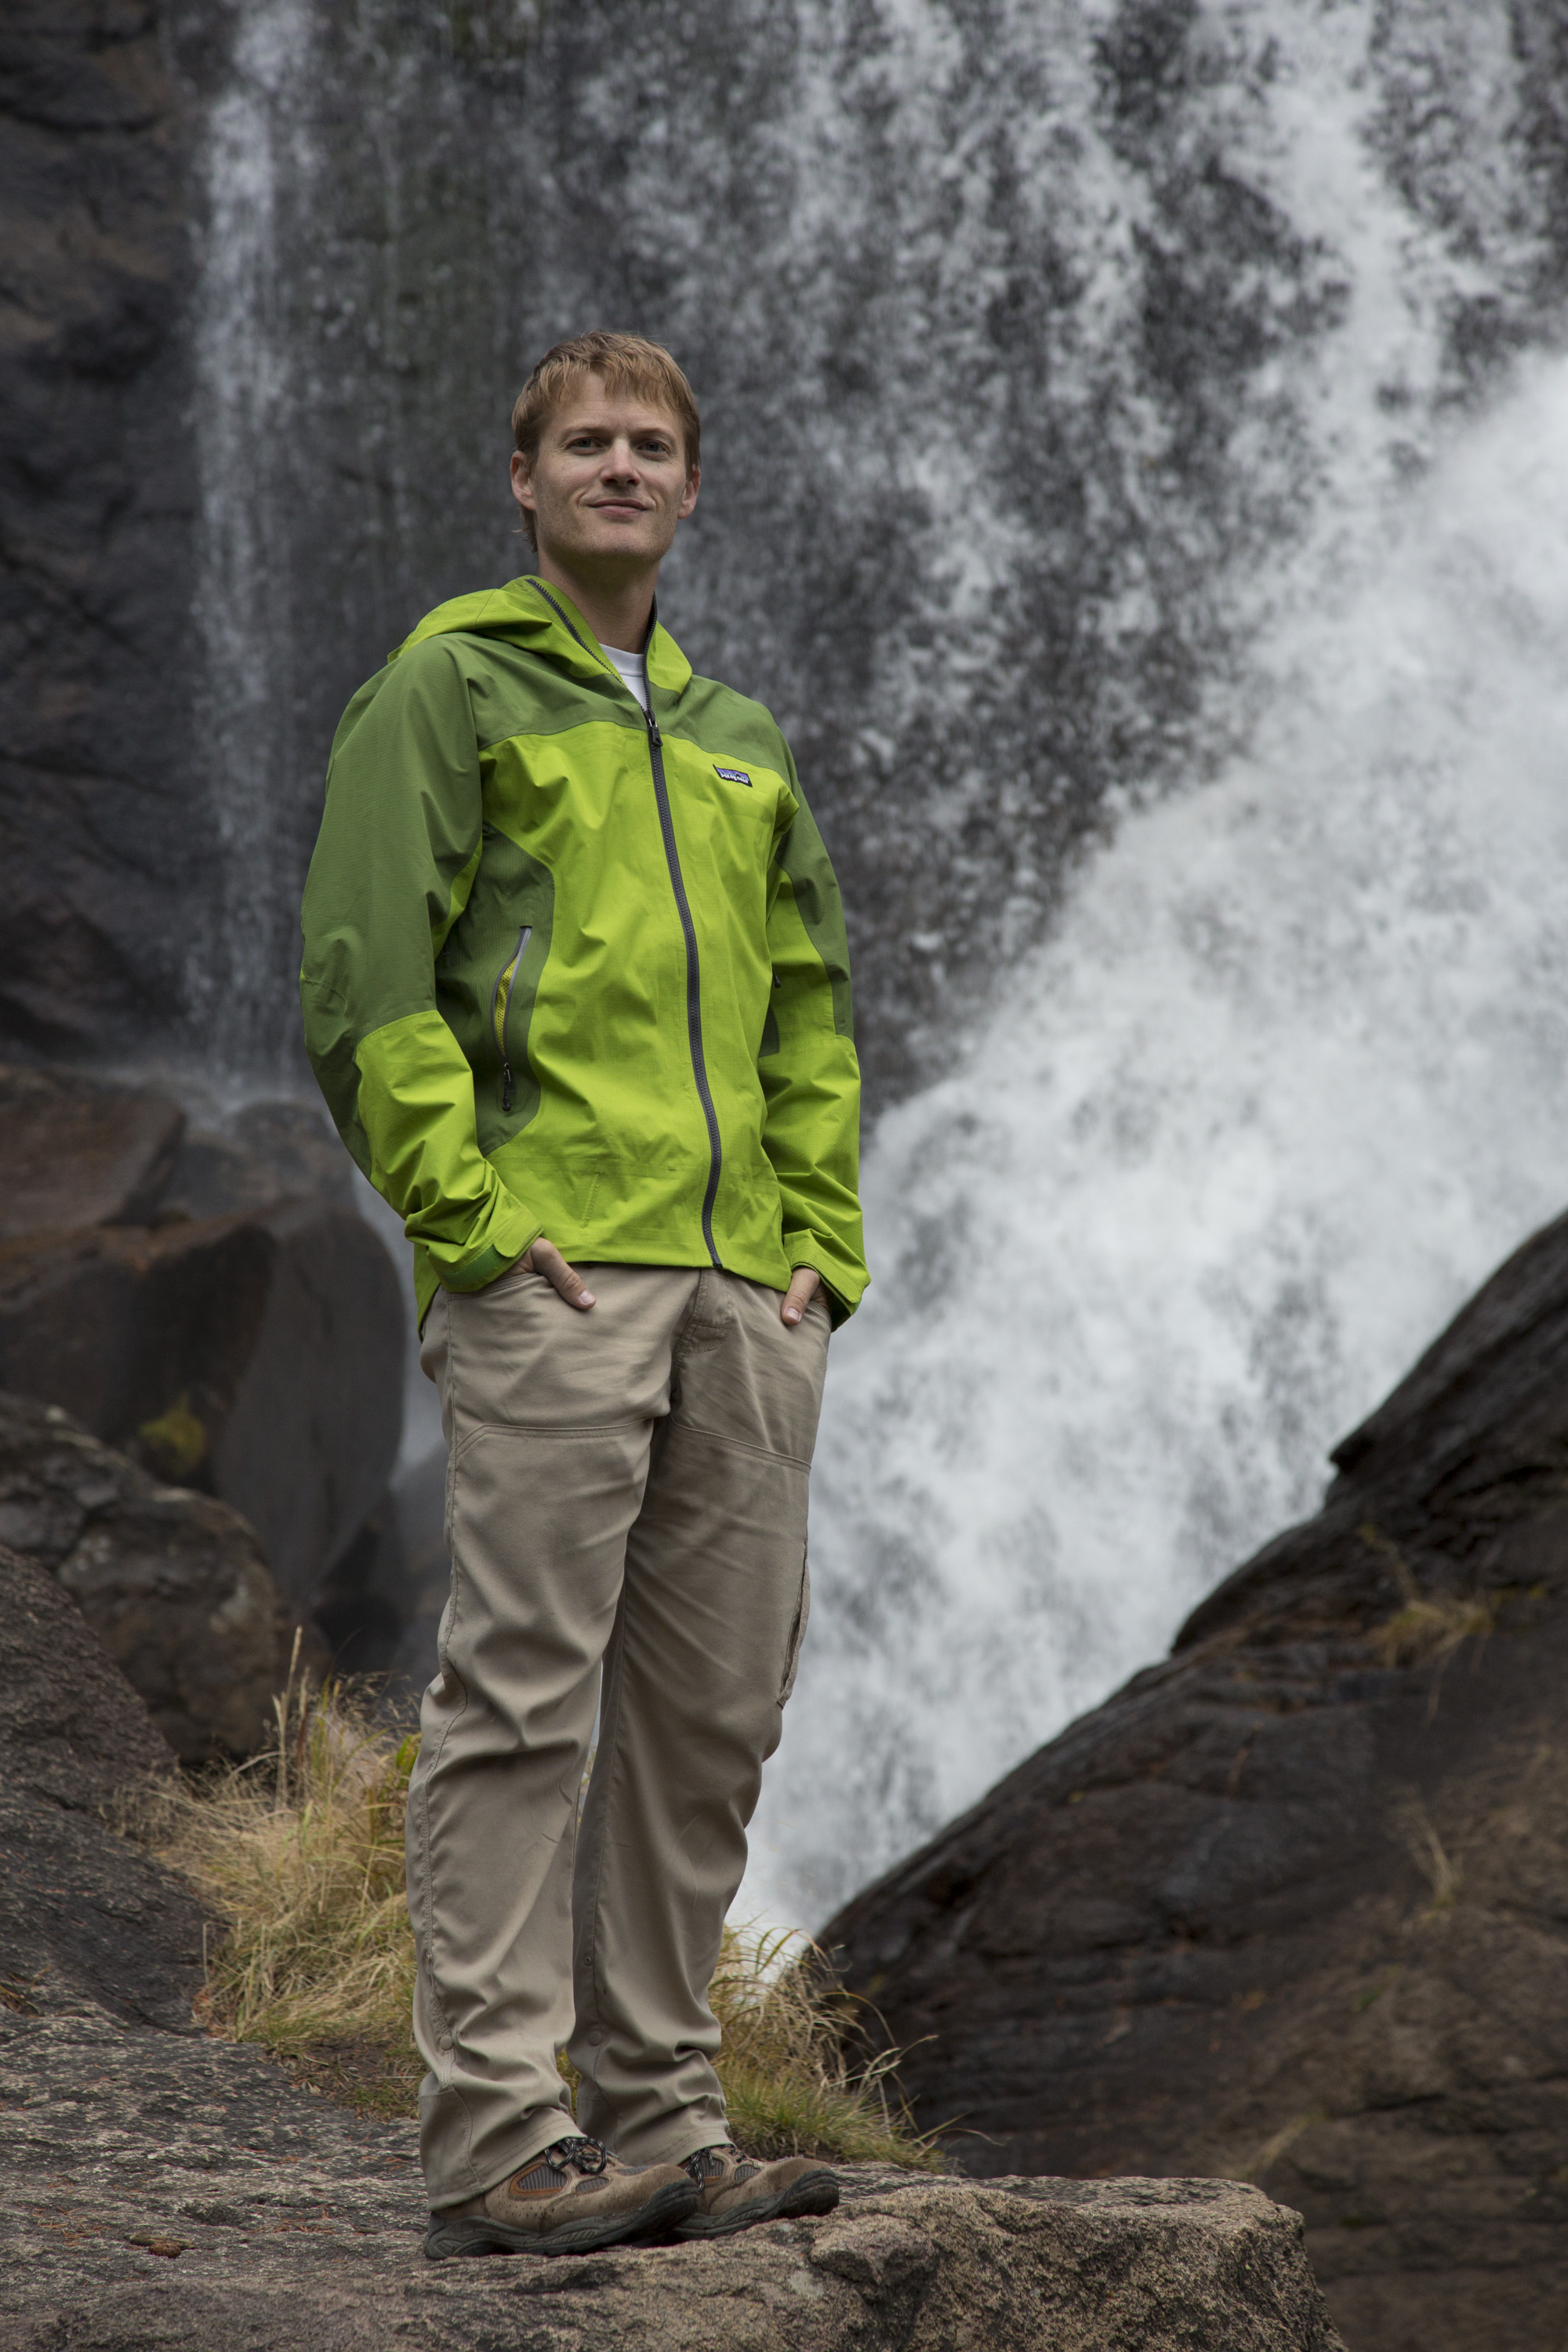 Wearing a green jacket, Chris Lawrence, the founder of Hope Has Arrived and cancer survivor, stands in front of a waterfall in Rocky Mountain National Park